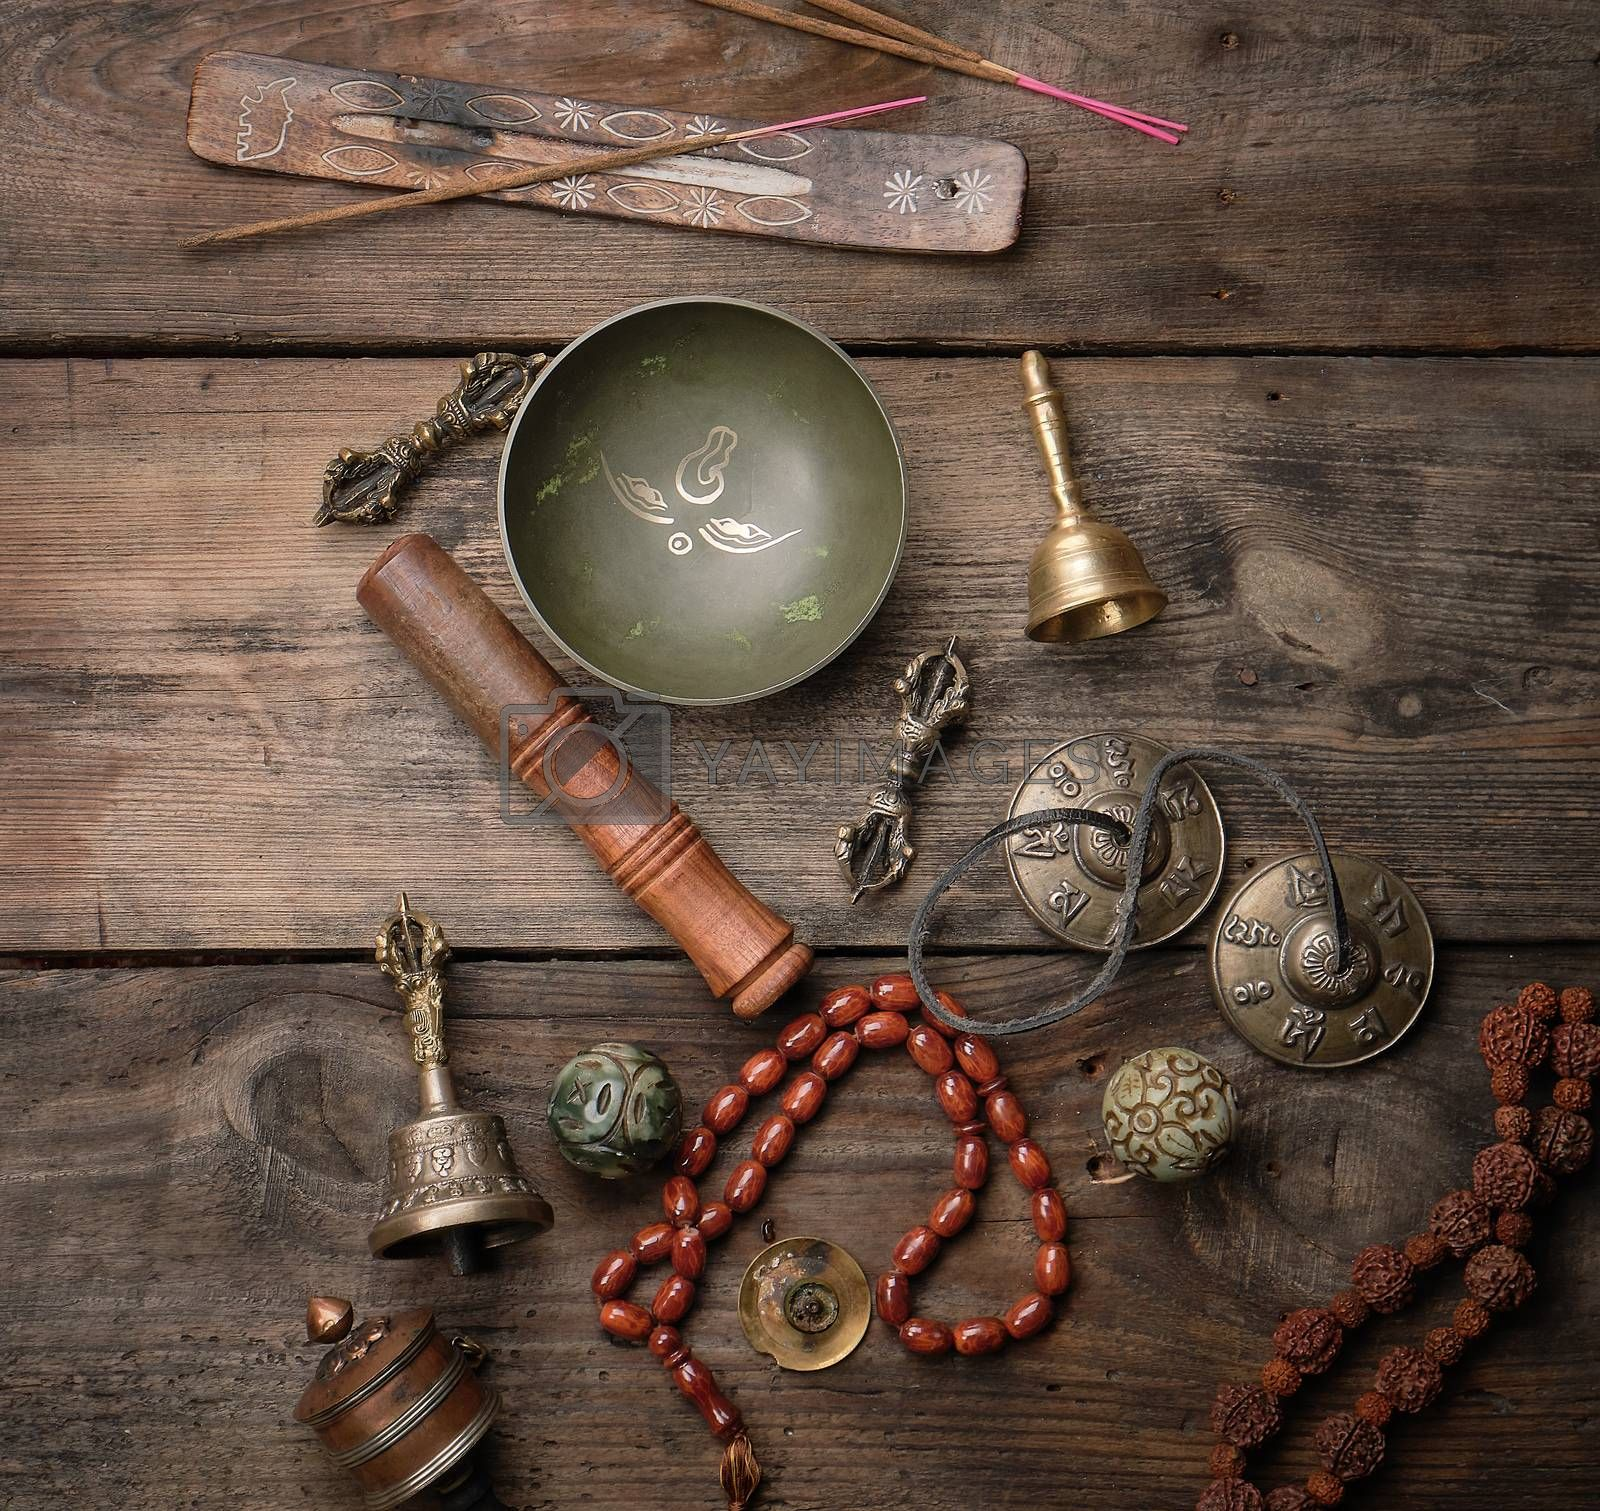 Copper singing bowl, prayer beads, prayer drum and other Tibetan religious objects for meditation and alternative medicine on a brown wooden background